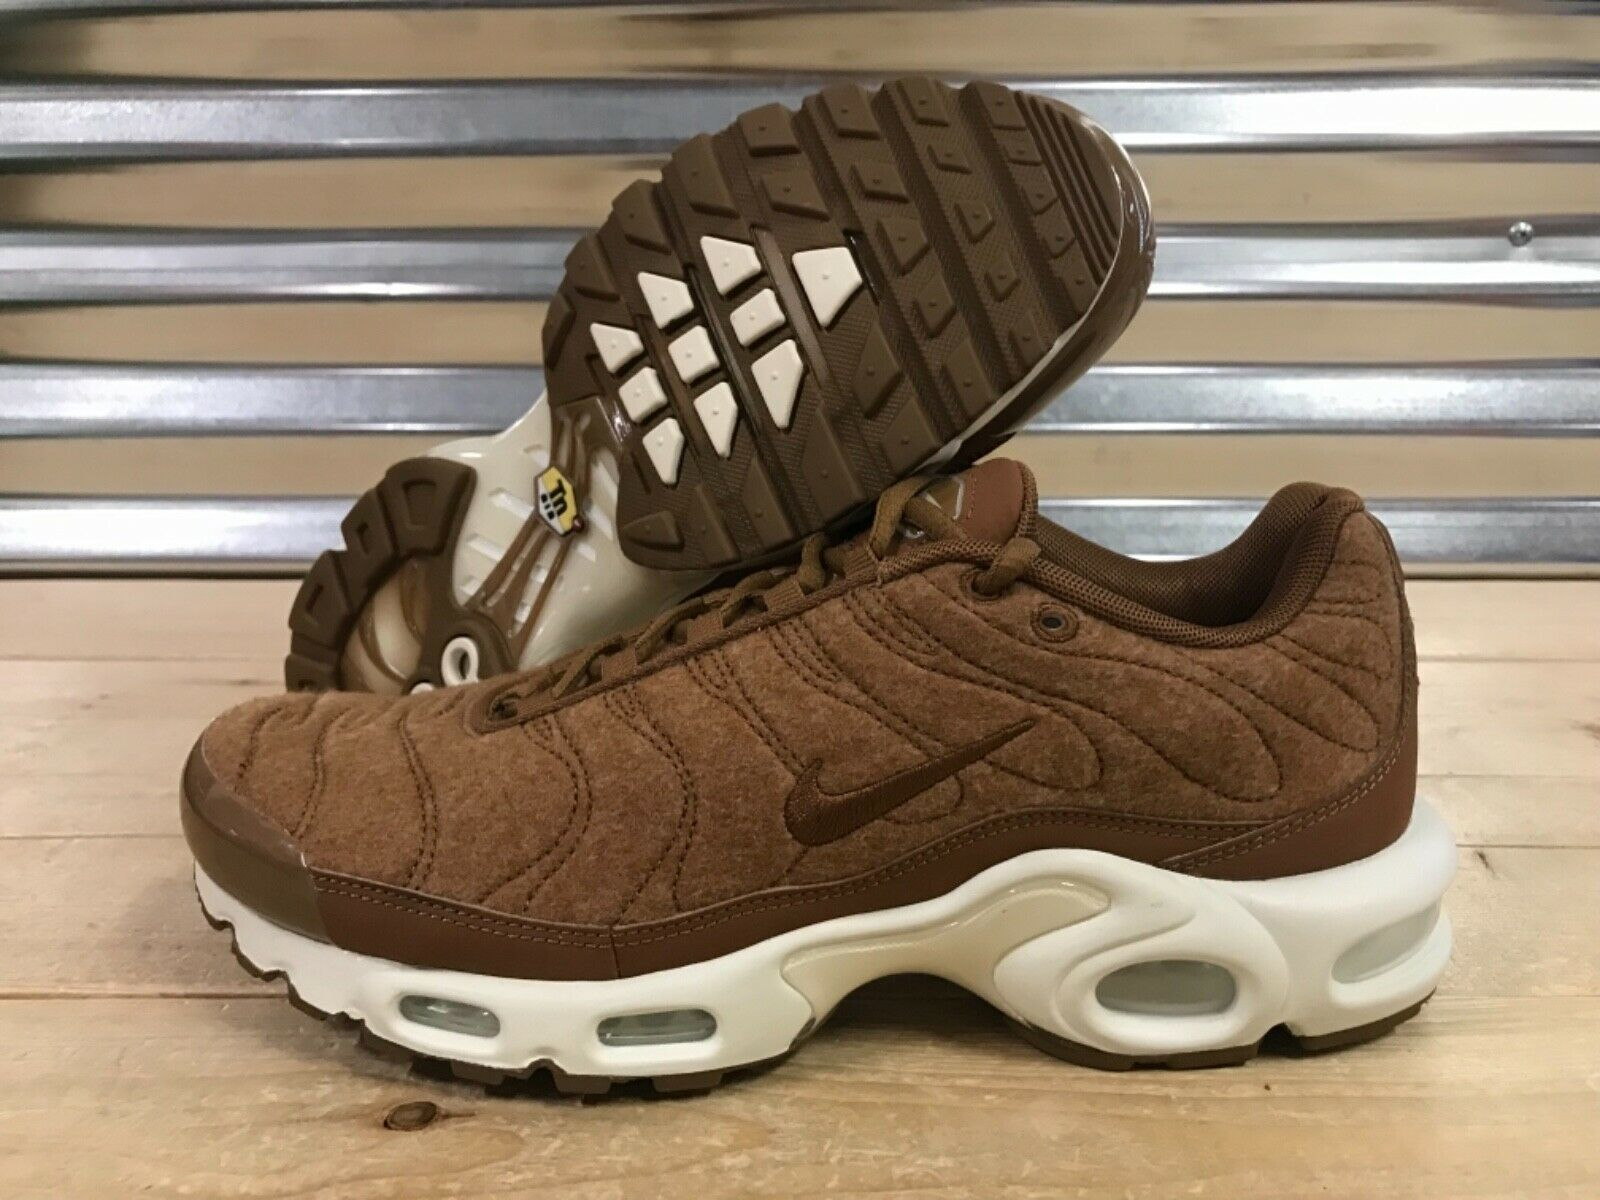 Nike Air Max Plus TN Running shoes Quilted Brown Ale Wheat SZ ( 806262-200 )